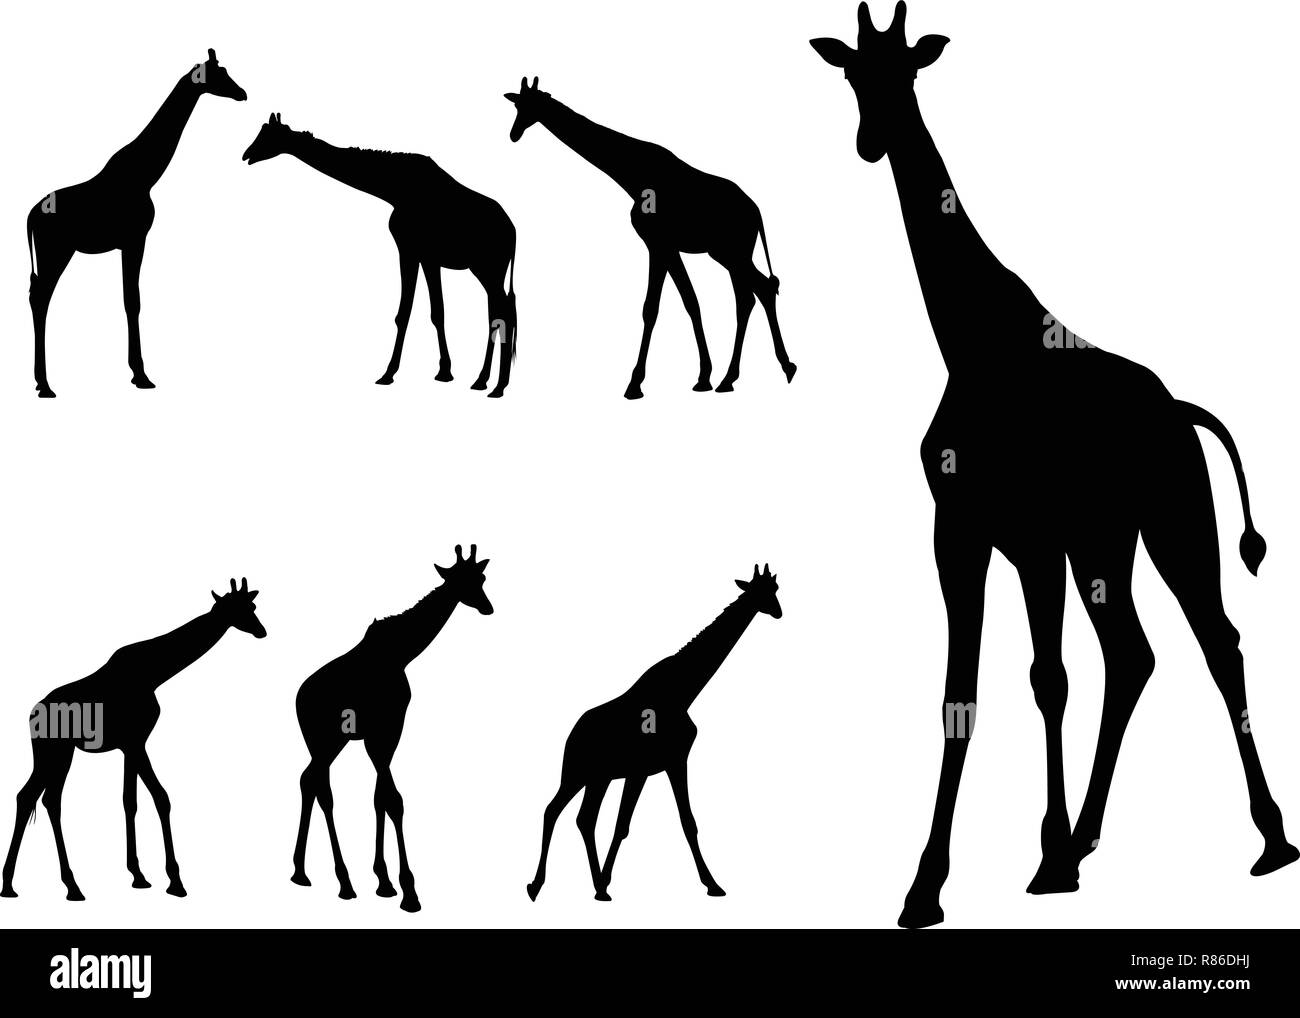 giraffes silhouettes collection - vector - Stock Image